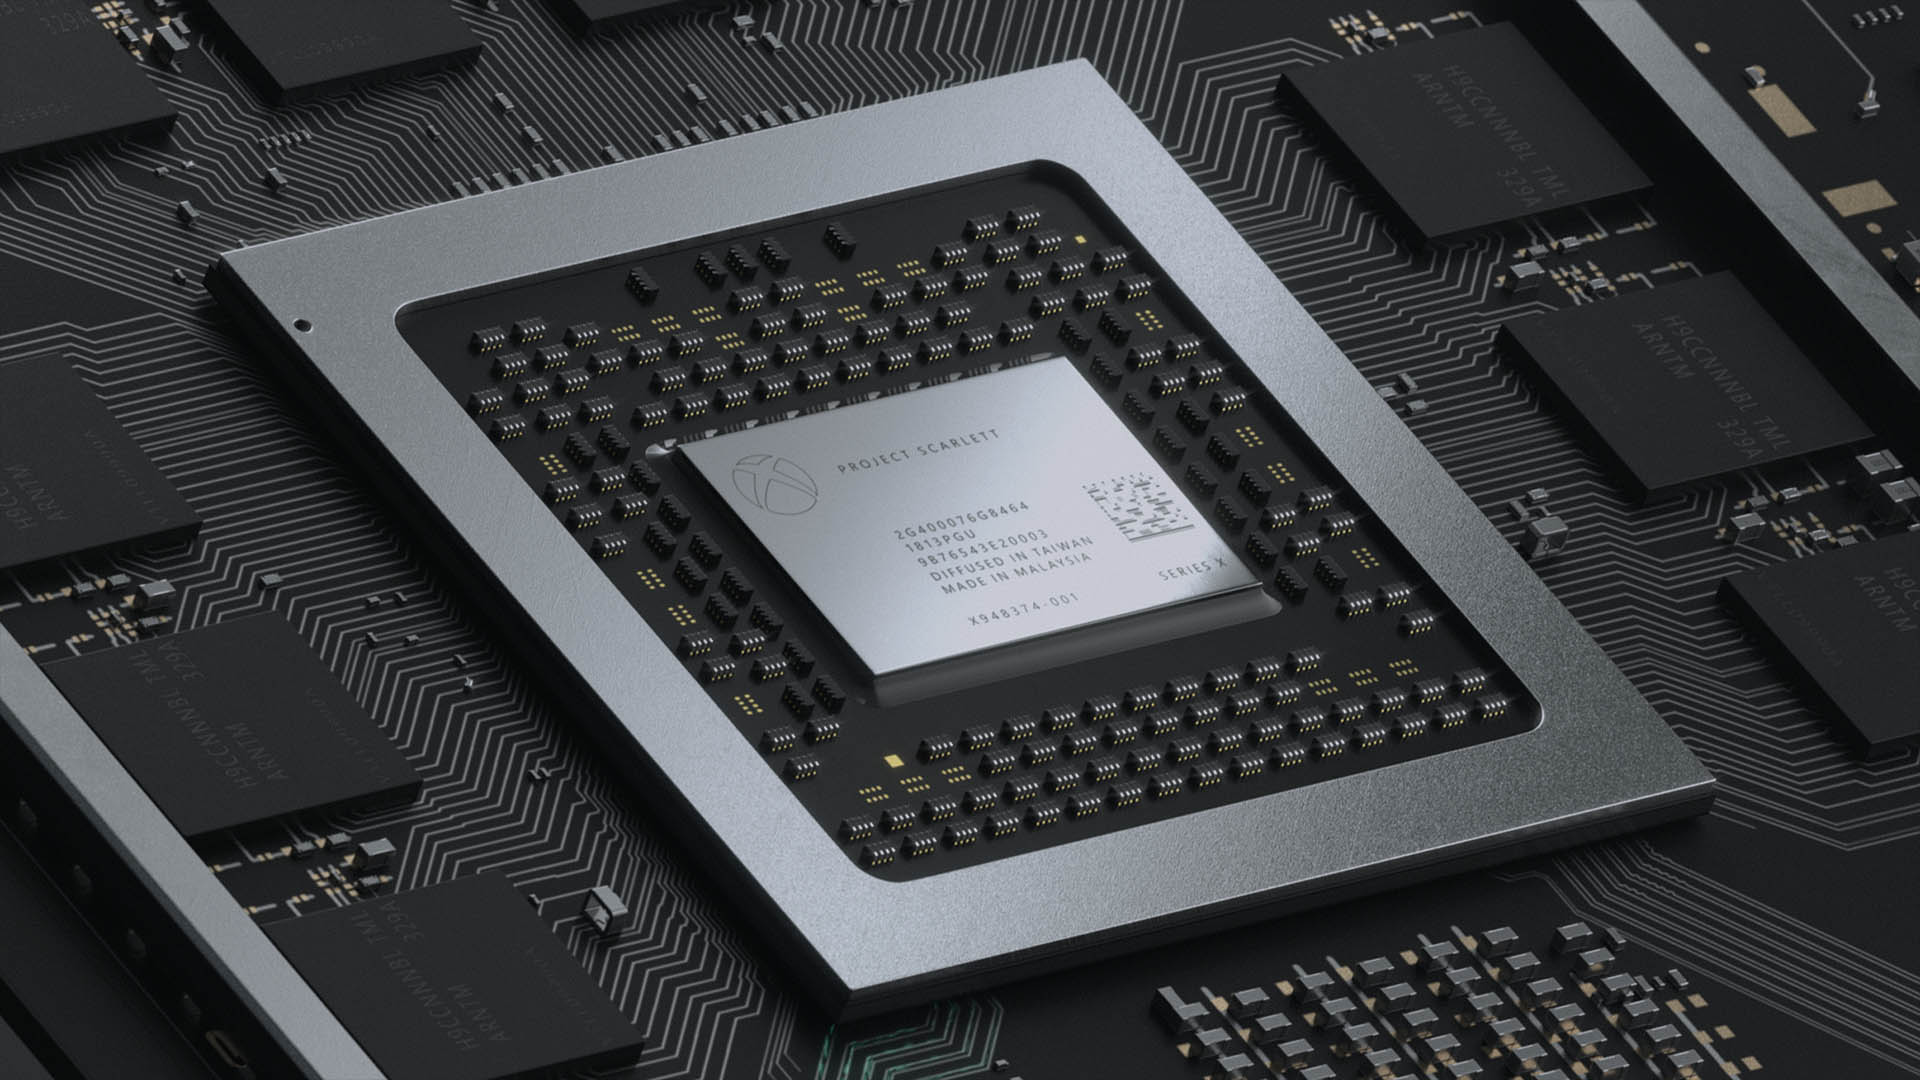 The Xbox Series X Is A Lot More Than A Gaming Pc Locked In A Box Pcgamesn